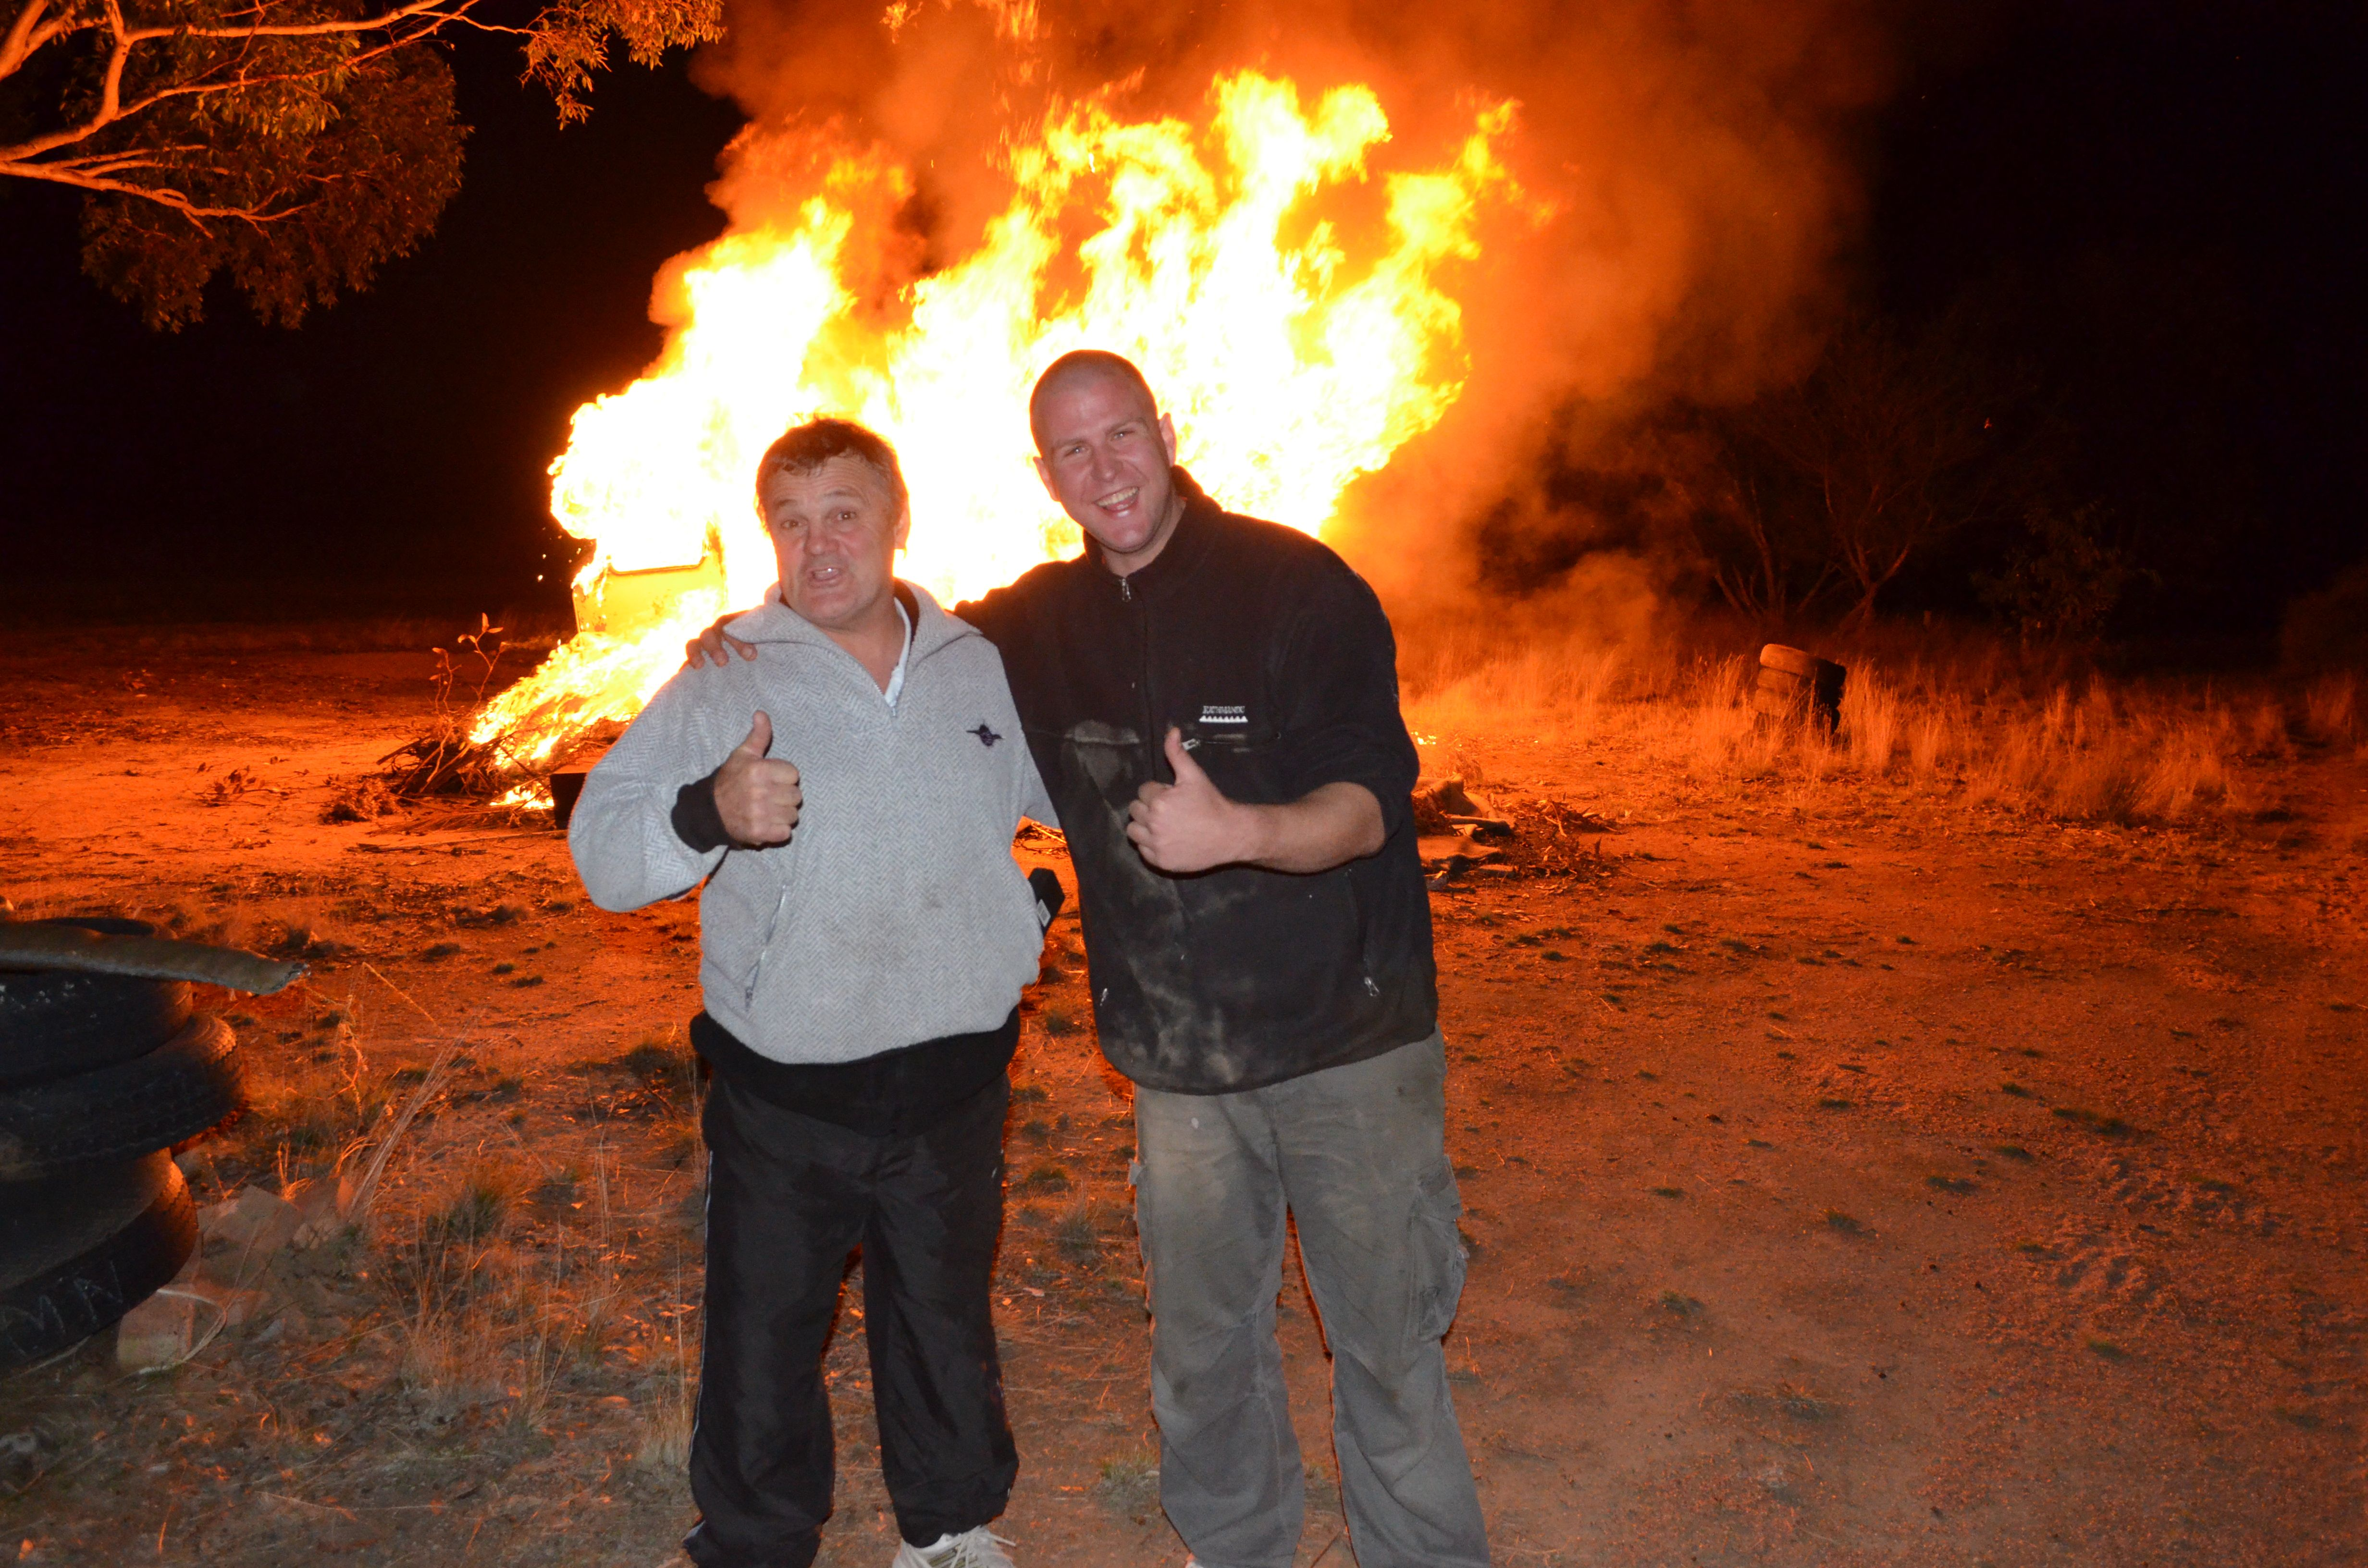 By the bon fire, after skydiving at Euroa